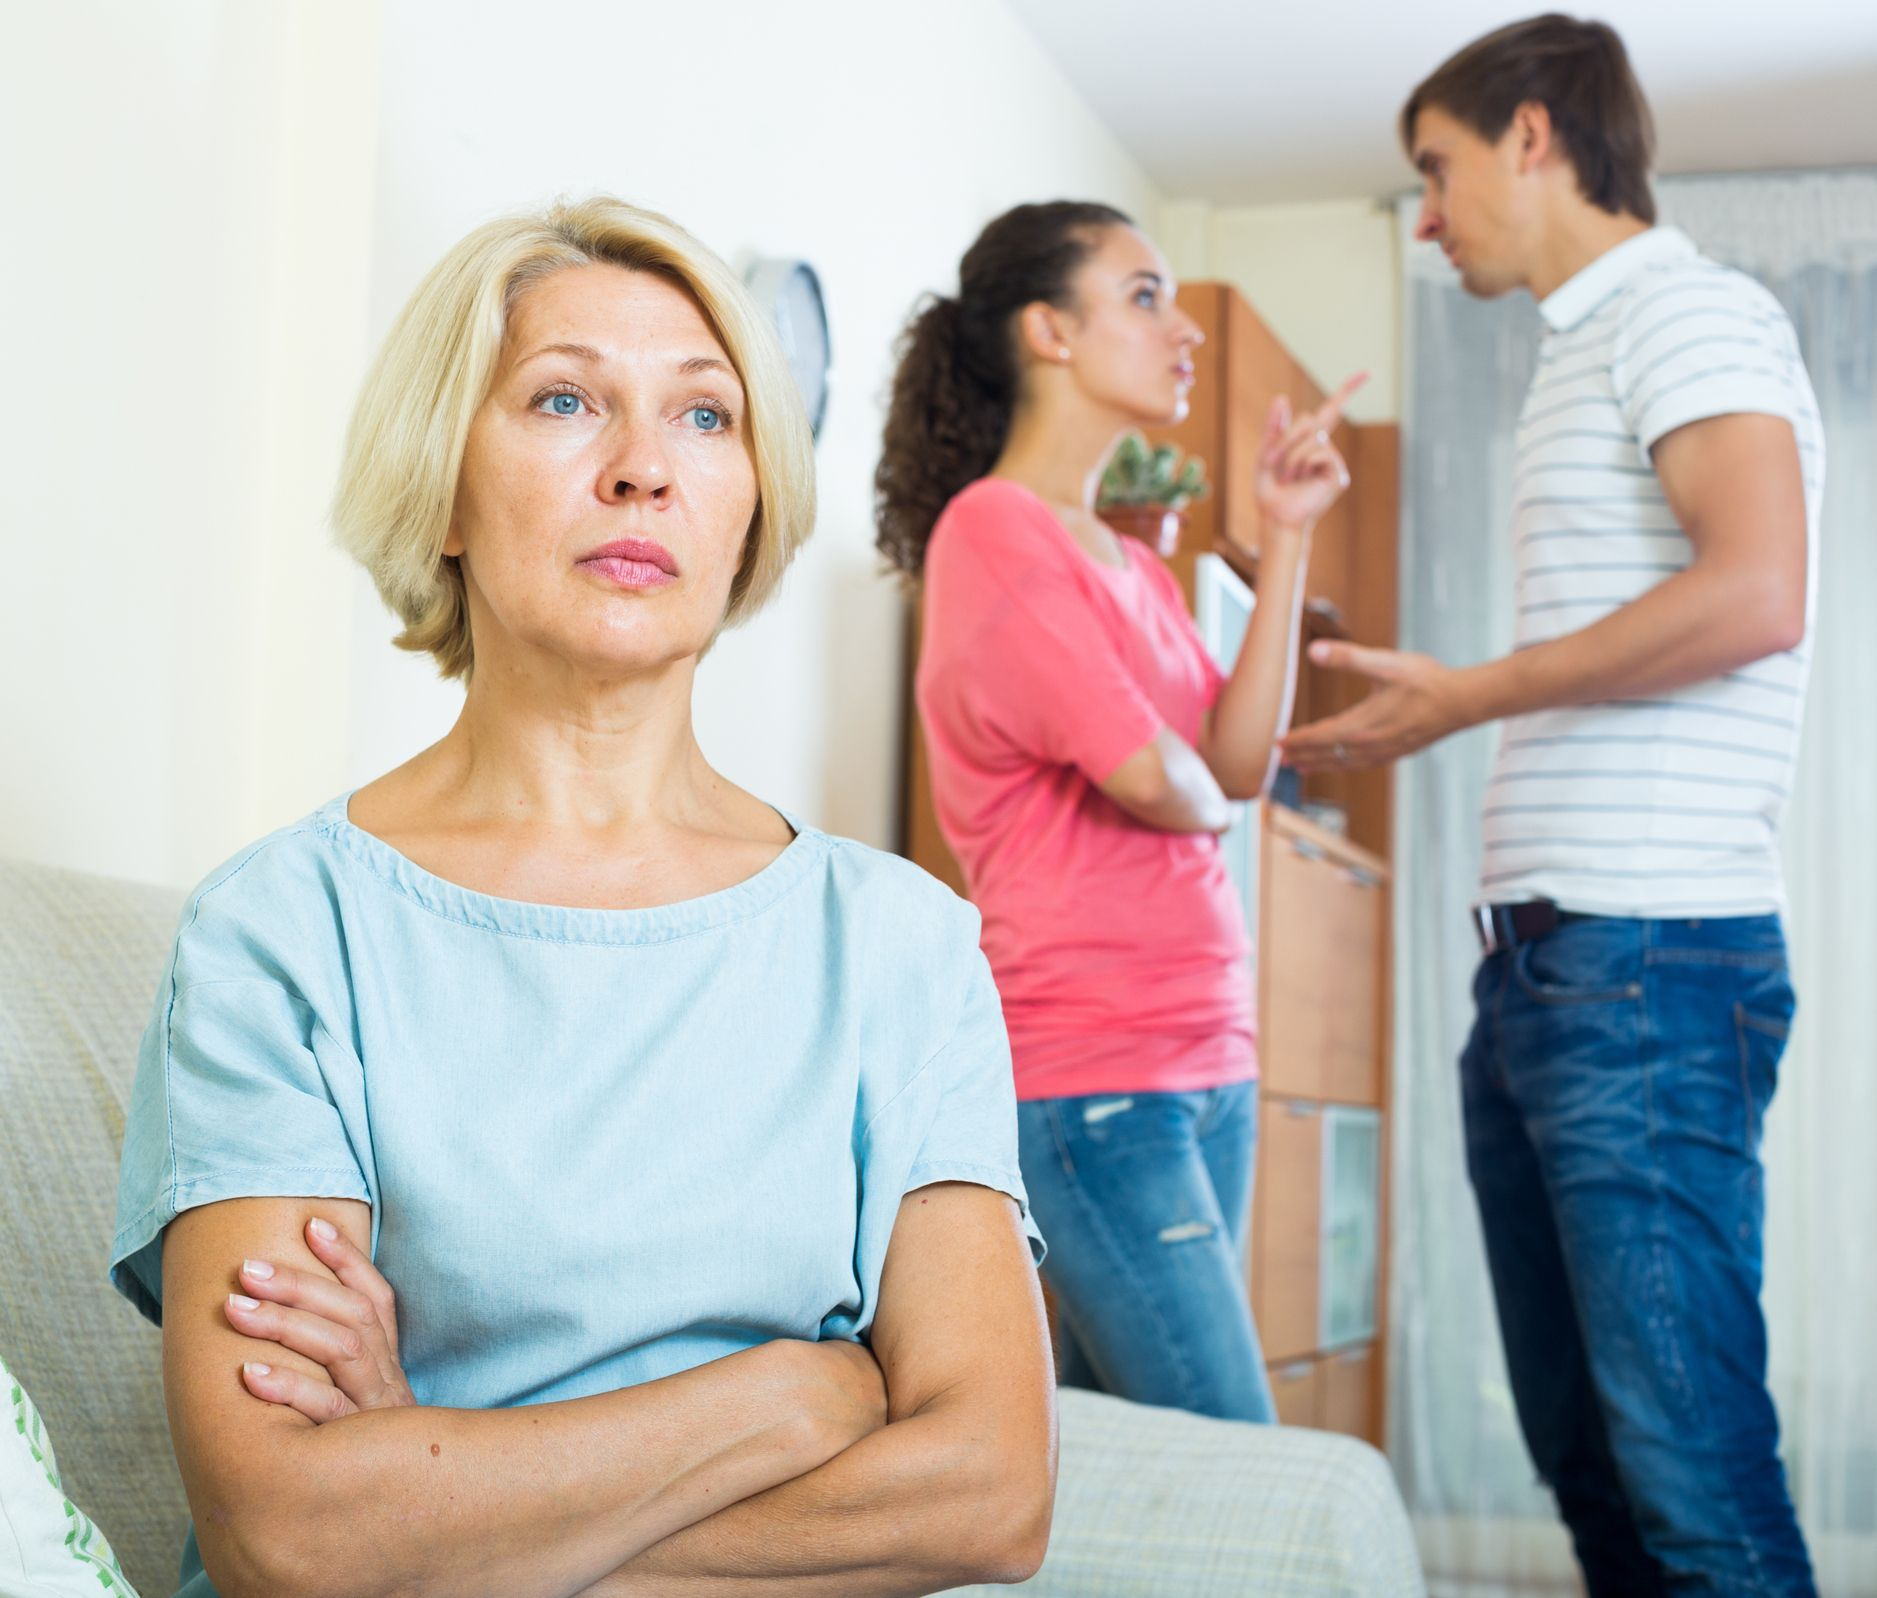 Mature woman watching young family couple quarrel at home